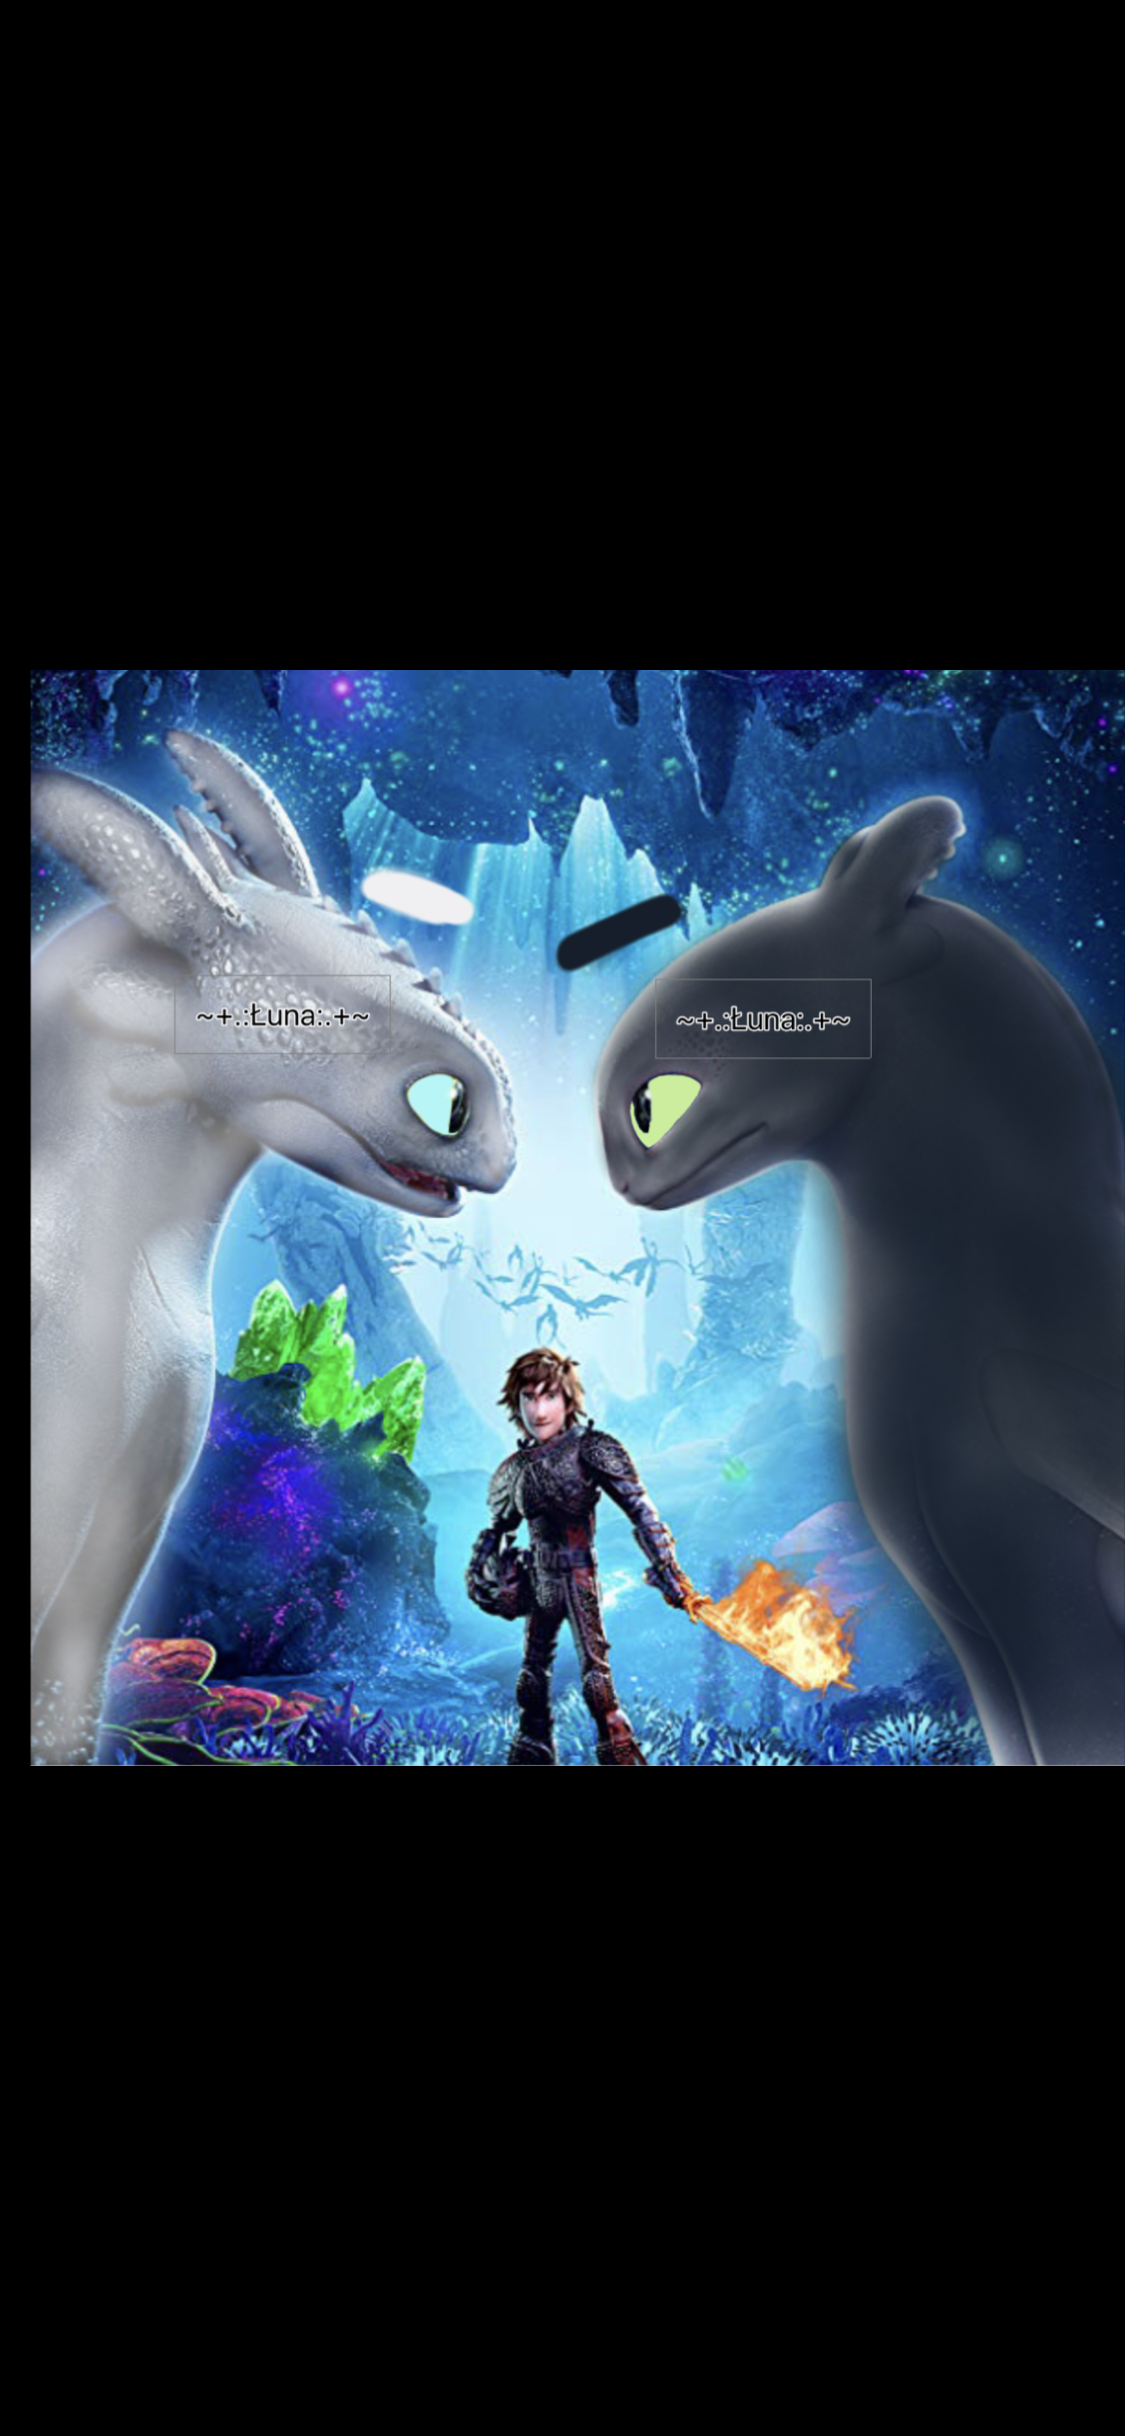 Pin by CountrySide Shadow on Httyd board 2 in 2020 How